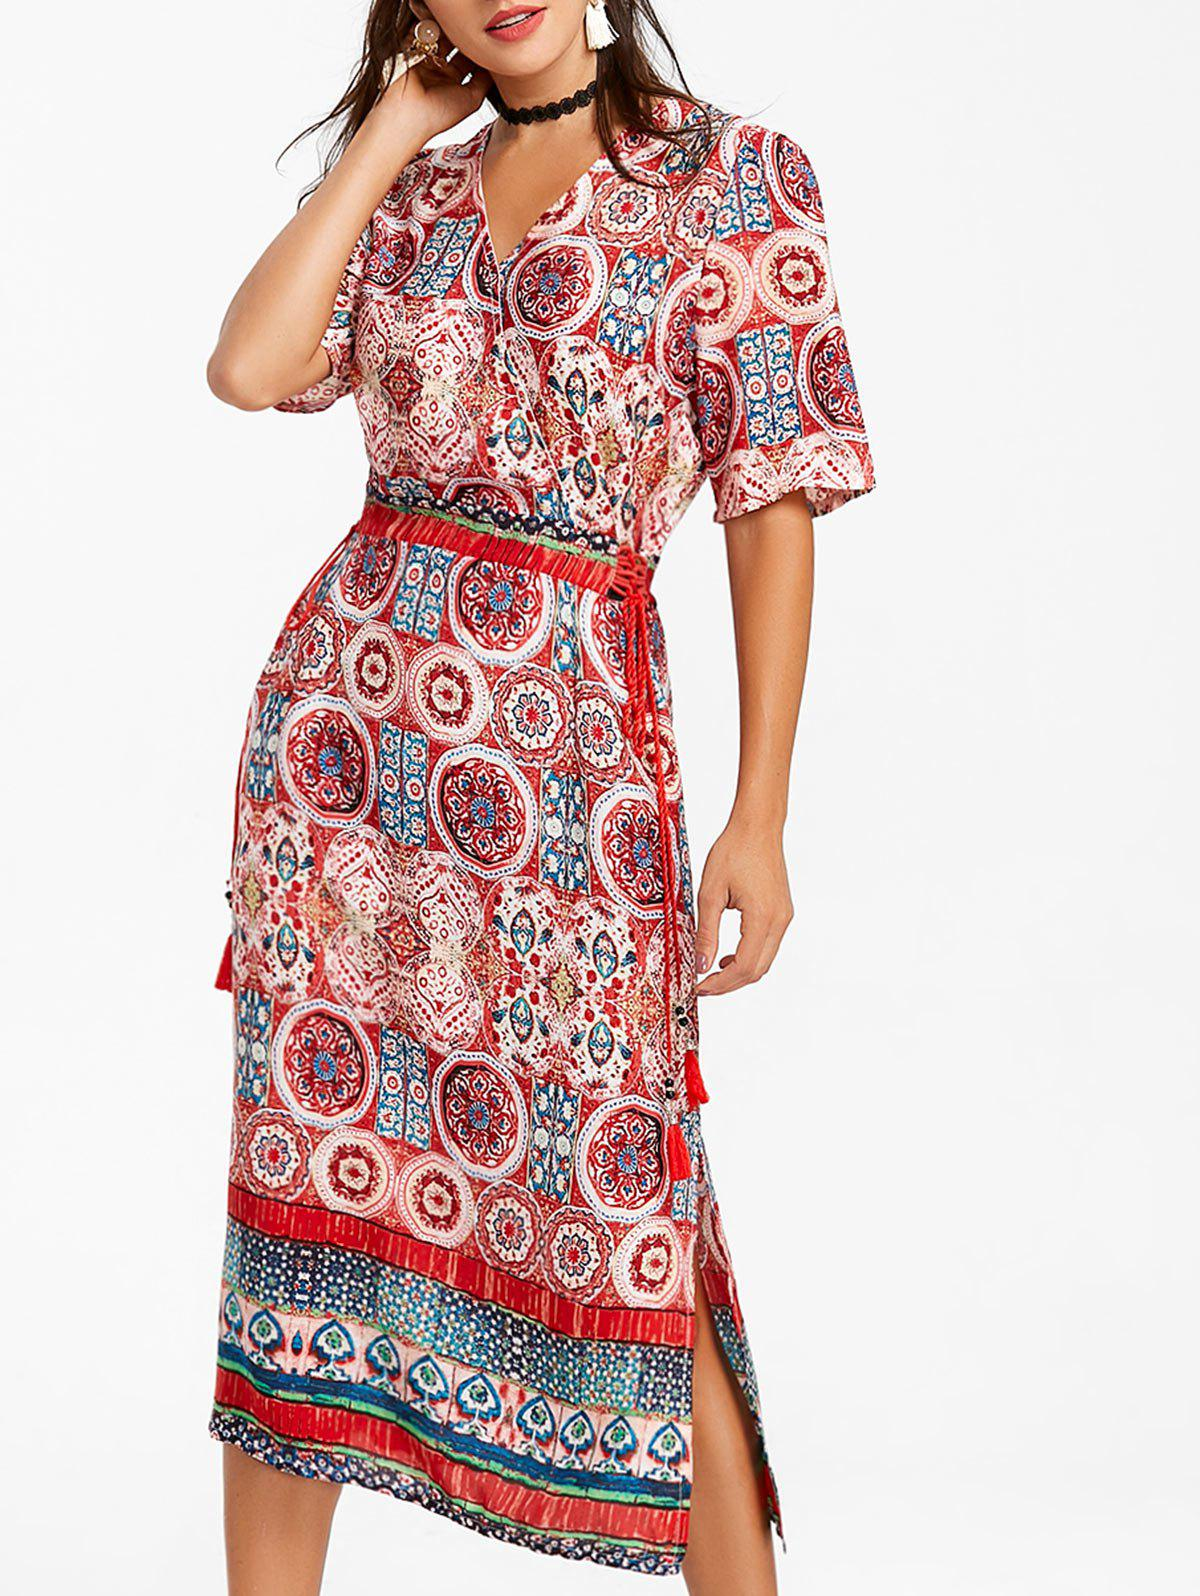 Bohemian Print Tea Length Surplice Dress - RED 2XL